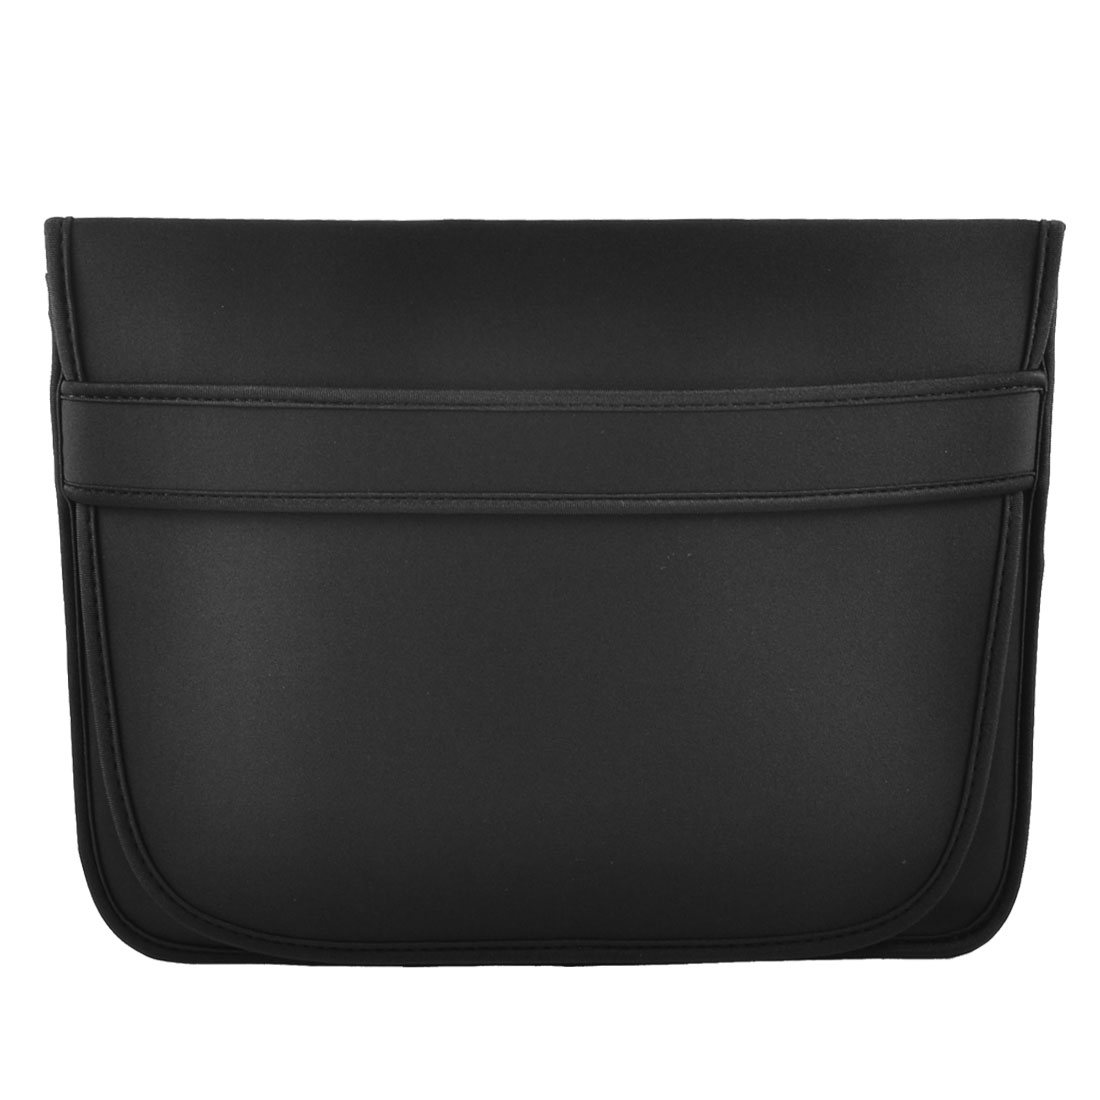 "15"" 15.4"" Laptop Flip Up Neoprene Travel Sleeve Bag Case Pouch Black"